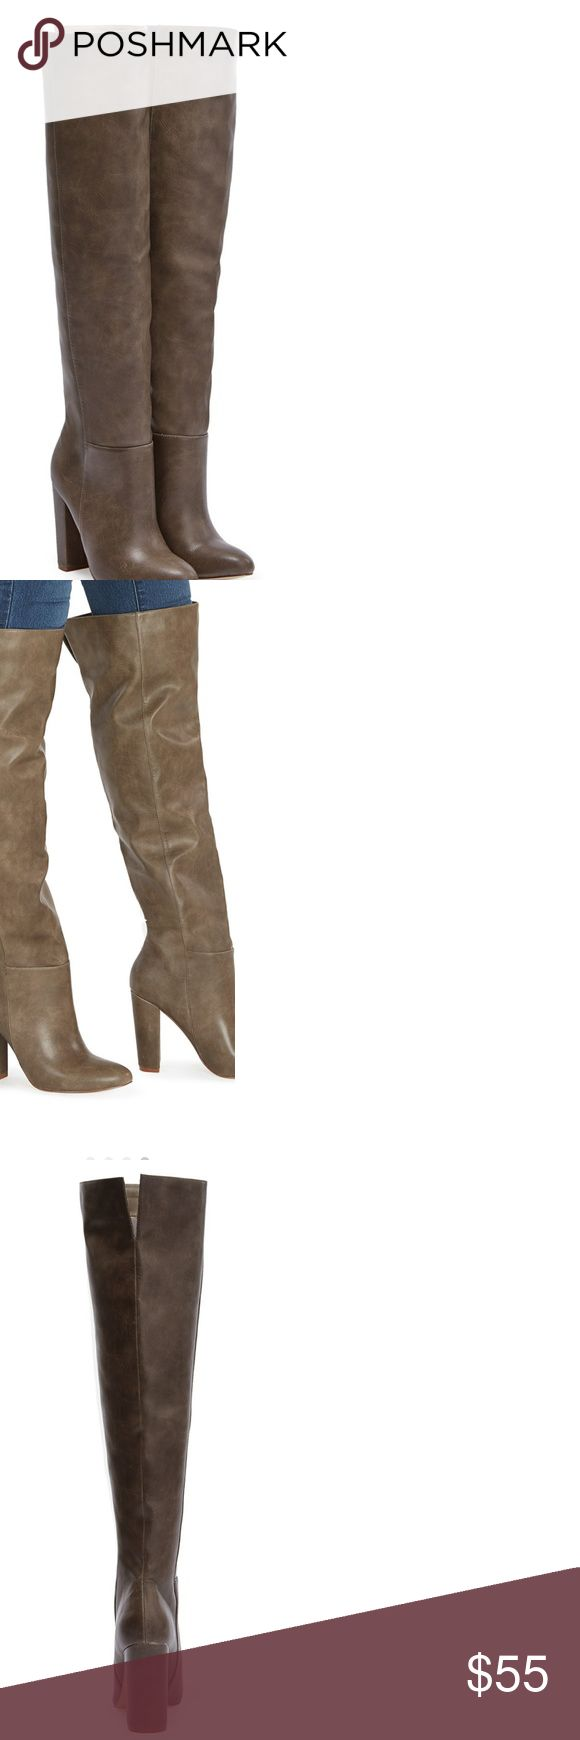 """GERALDINE Taupe rider boots GERALDINE Taupe rider boots Amazing condition 9 out of 10 Size 9 MATERIAL:Faux-leather COLOR:TAUPE OUTSIDE HEEL HEIGHT:4""""CALF  CIRCUMFERENCE:15.5"""" Wide Calf: 16.5"""" Shoes Heeled Boots"""